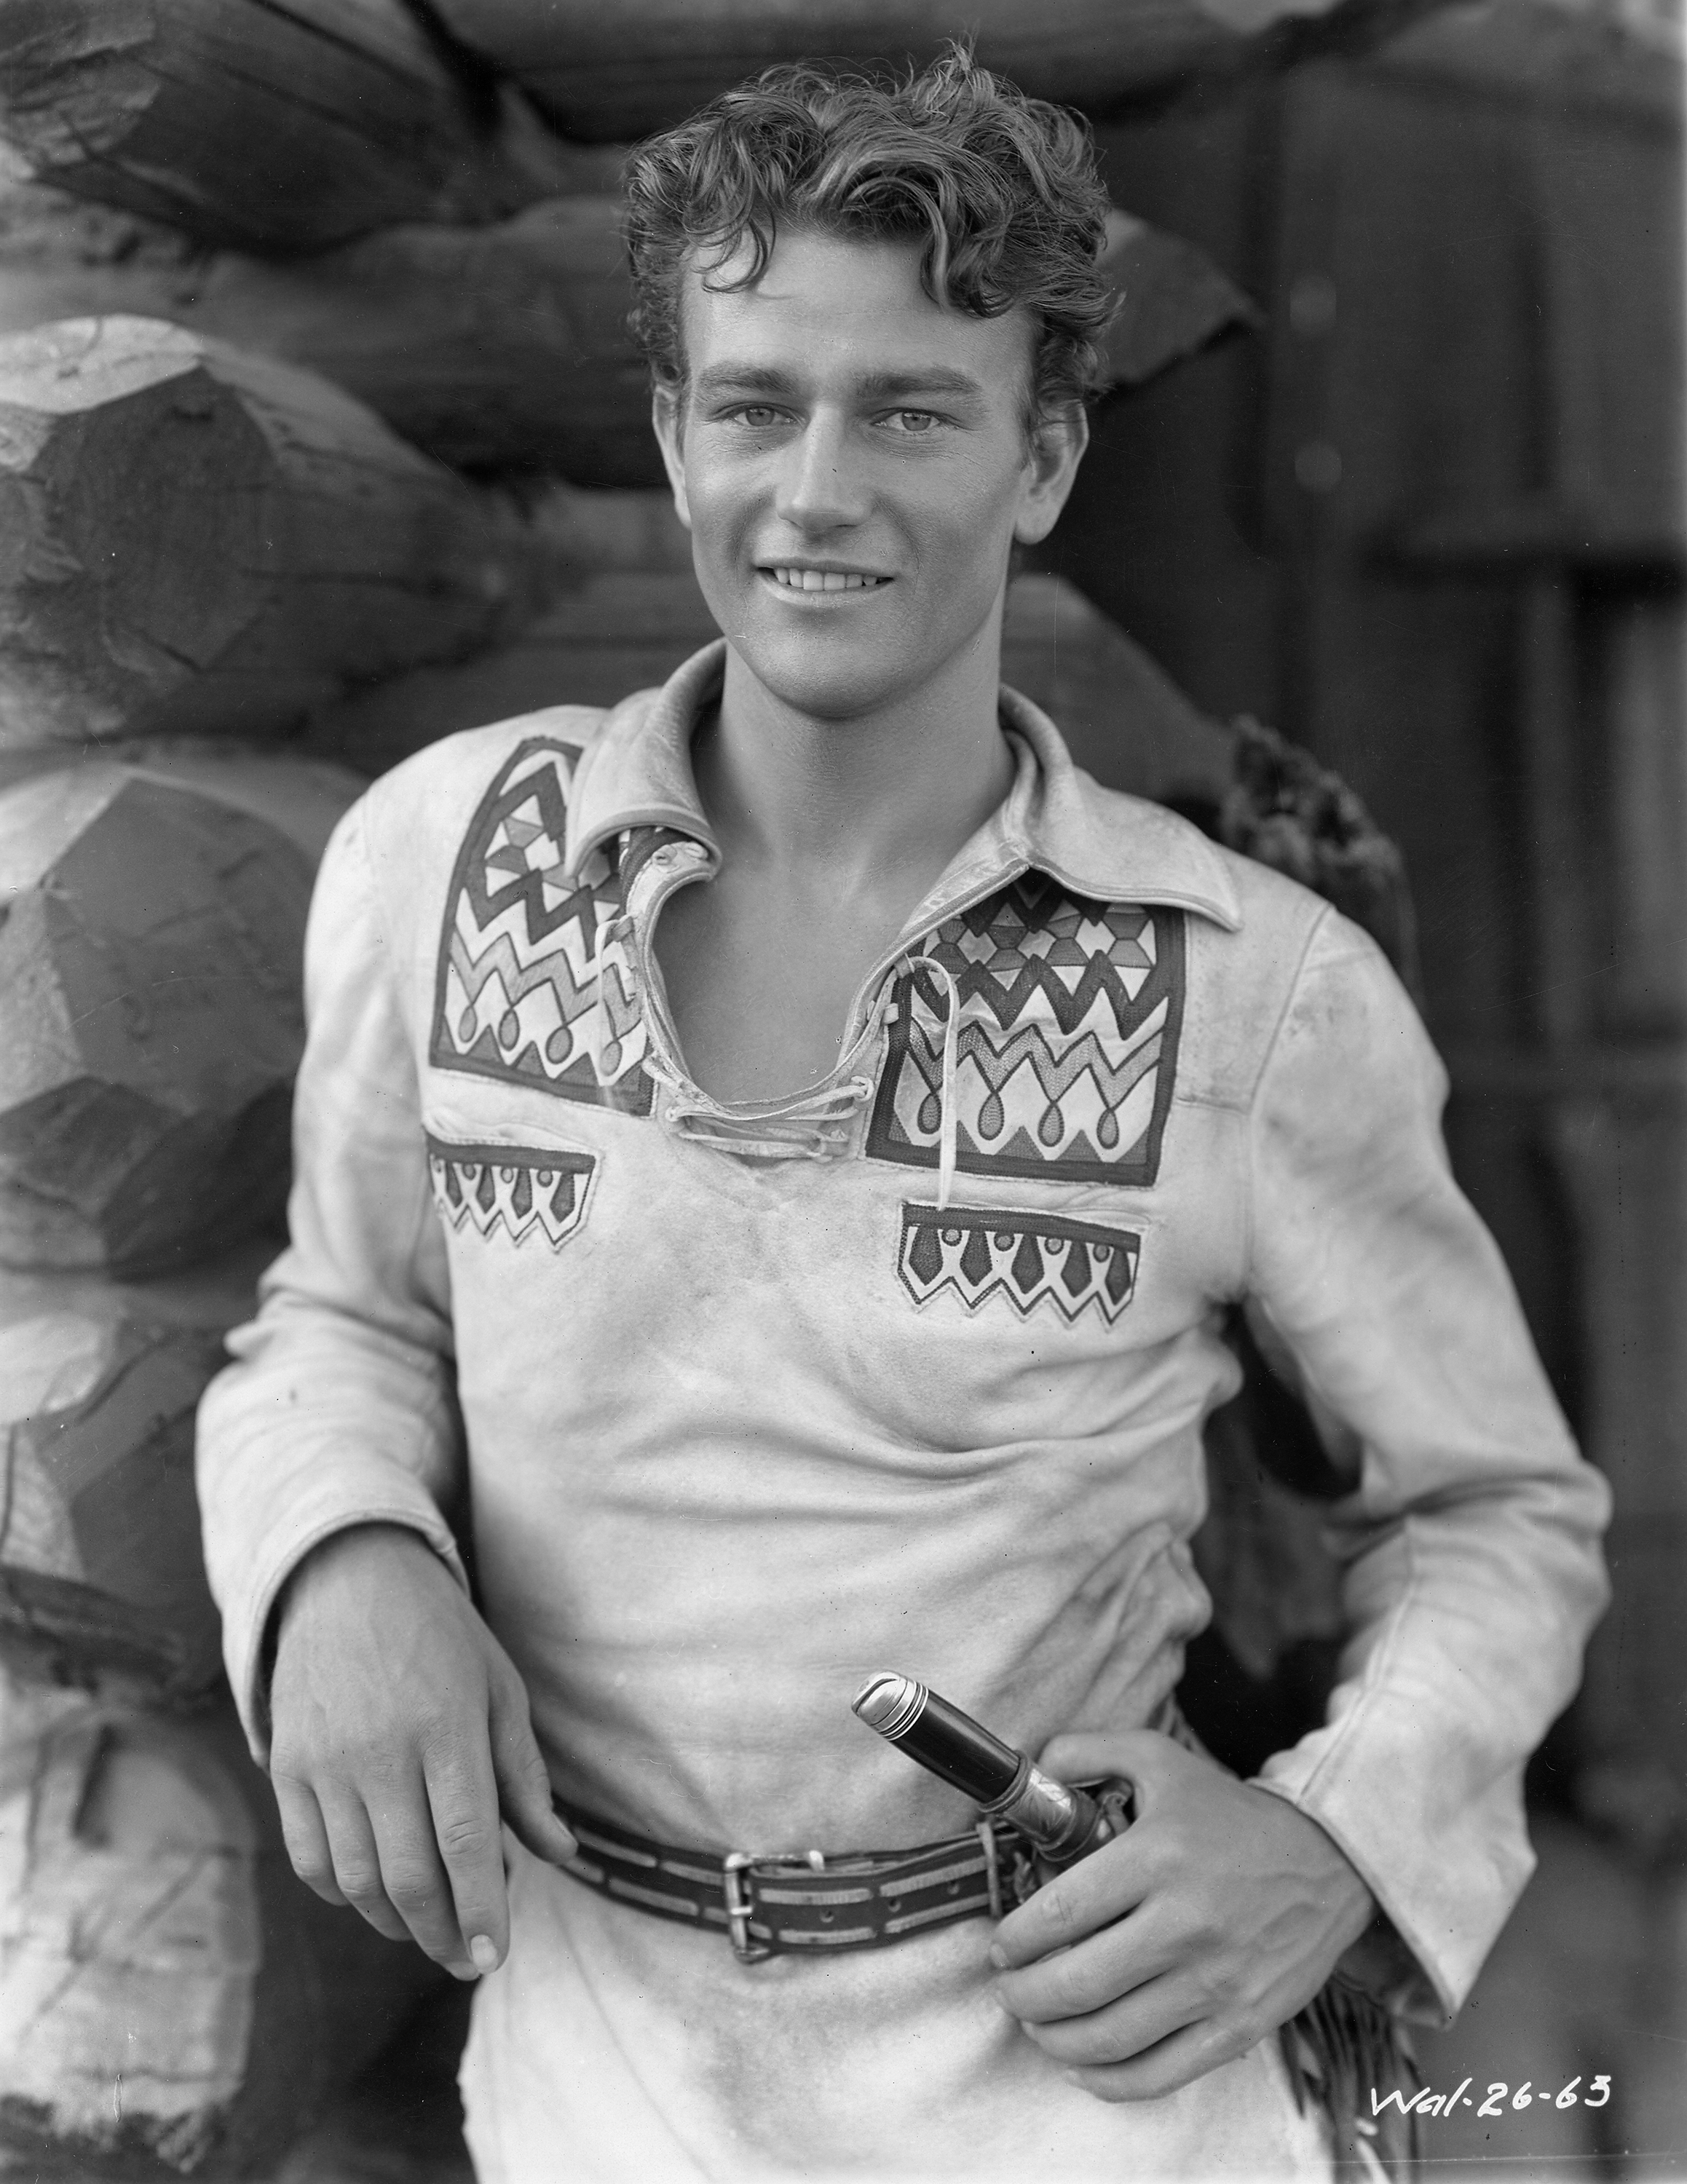 At 22, John Wayne was given his first major role by director Raoul Walsh in  The Big Trail  (1930), where he starred as trail scout Breck Coleman earning $75 a week.